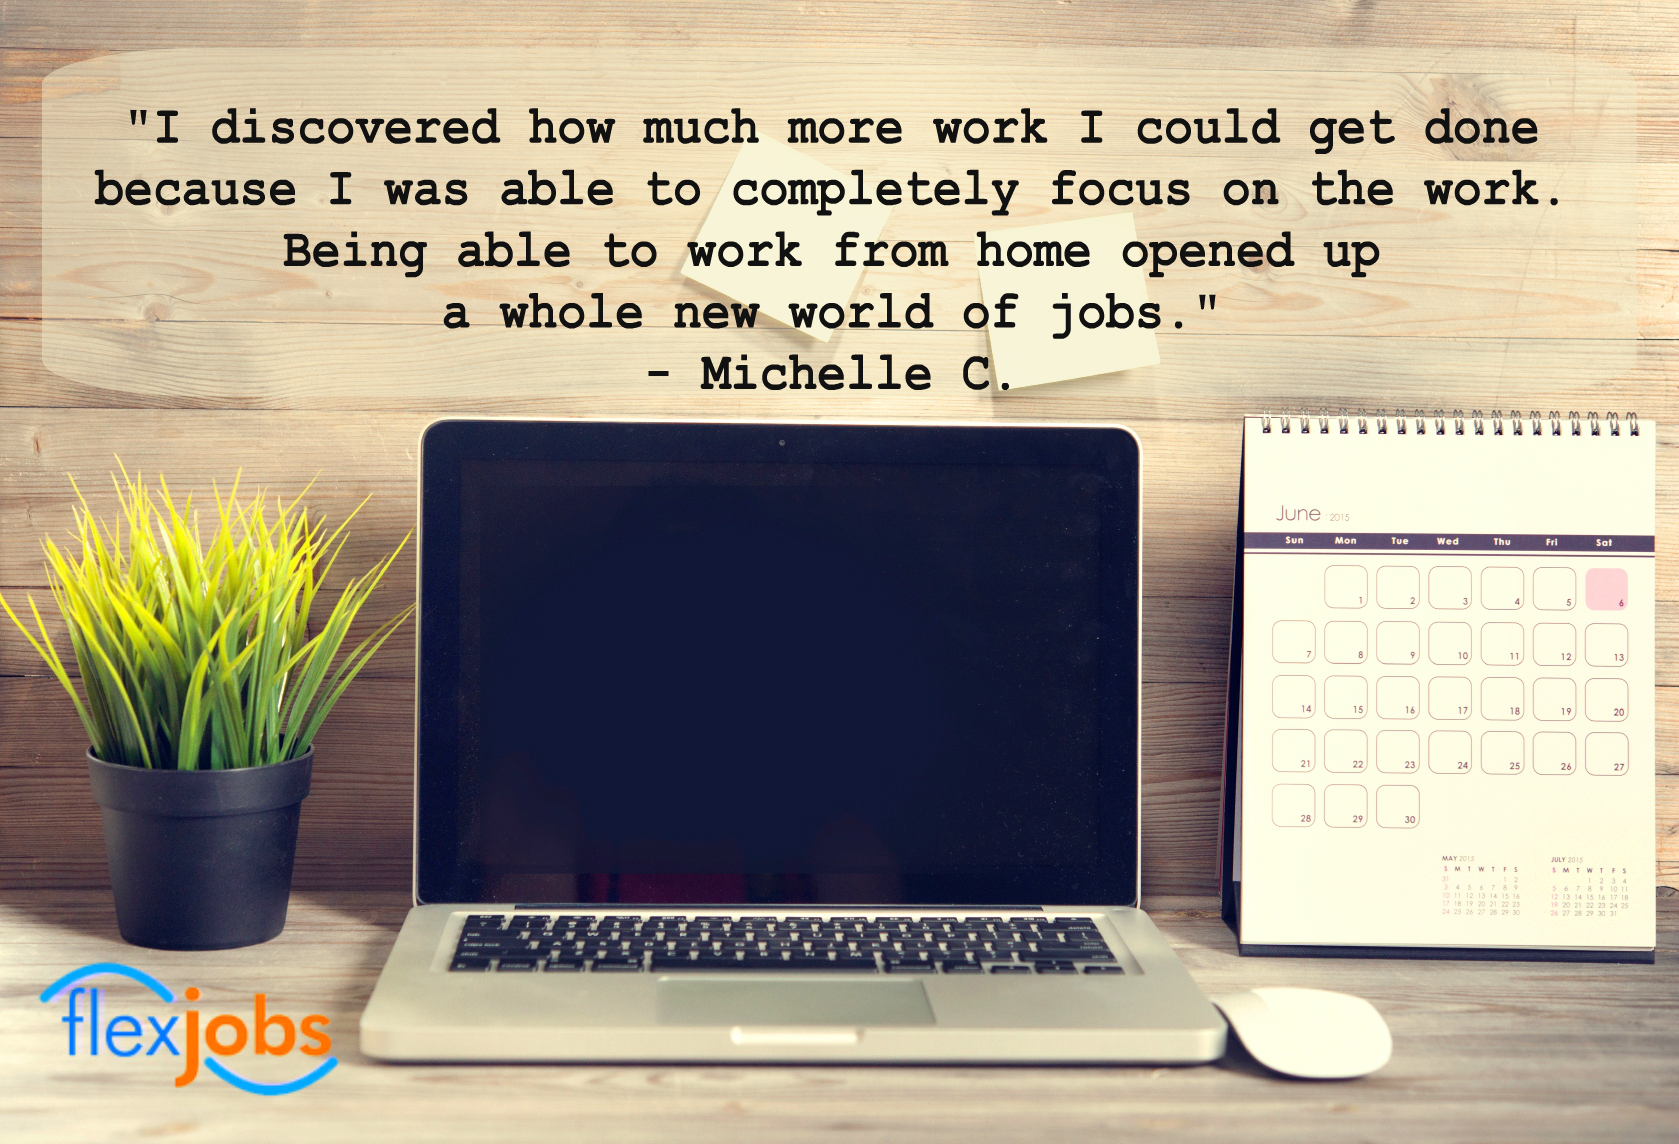 at home worker finds new opportunities a lance job flexjobs michelle c told us she had already discovered the joys of working from home when she became a flexjobs member i wasn t looking for a flexible job